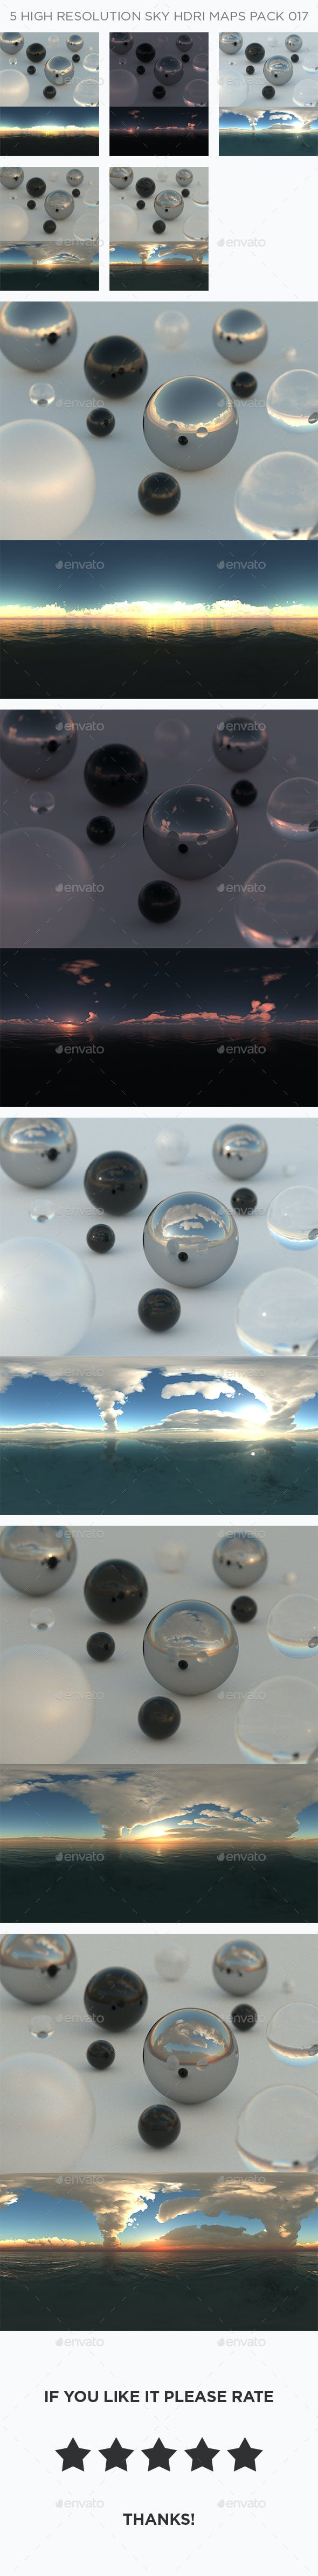 5 High Resolution Sky HDRi Maps Pack 017 - 3DOcean Item for Sale